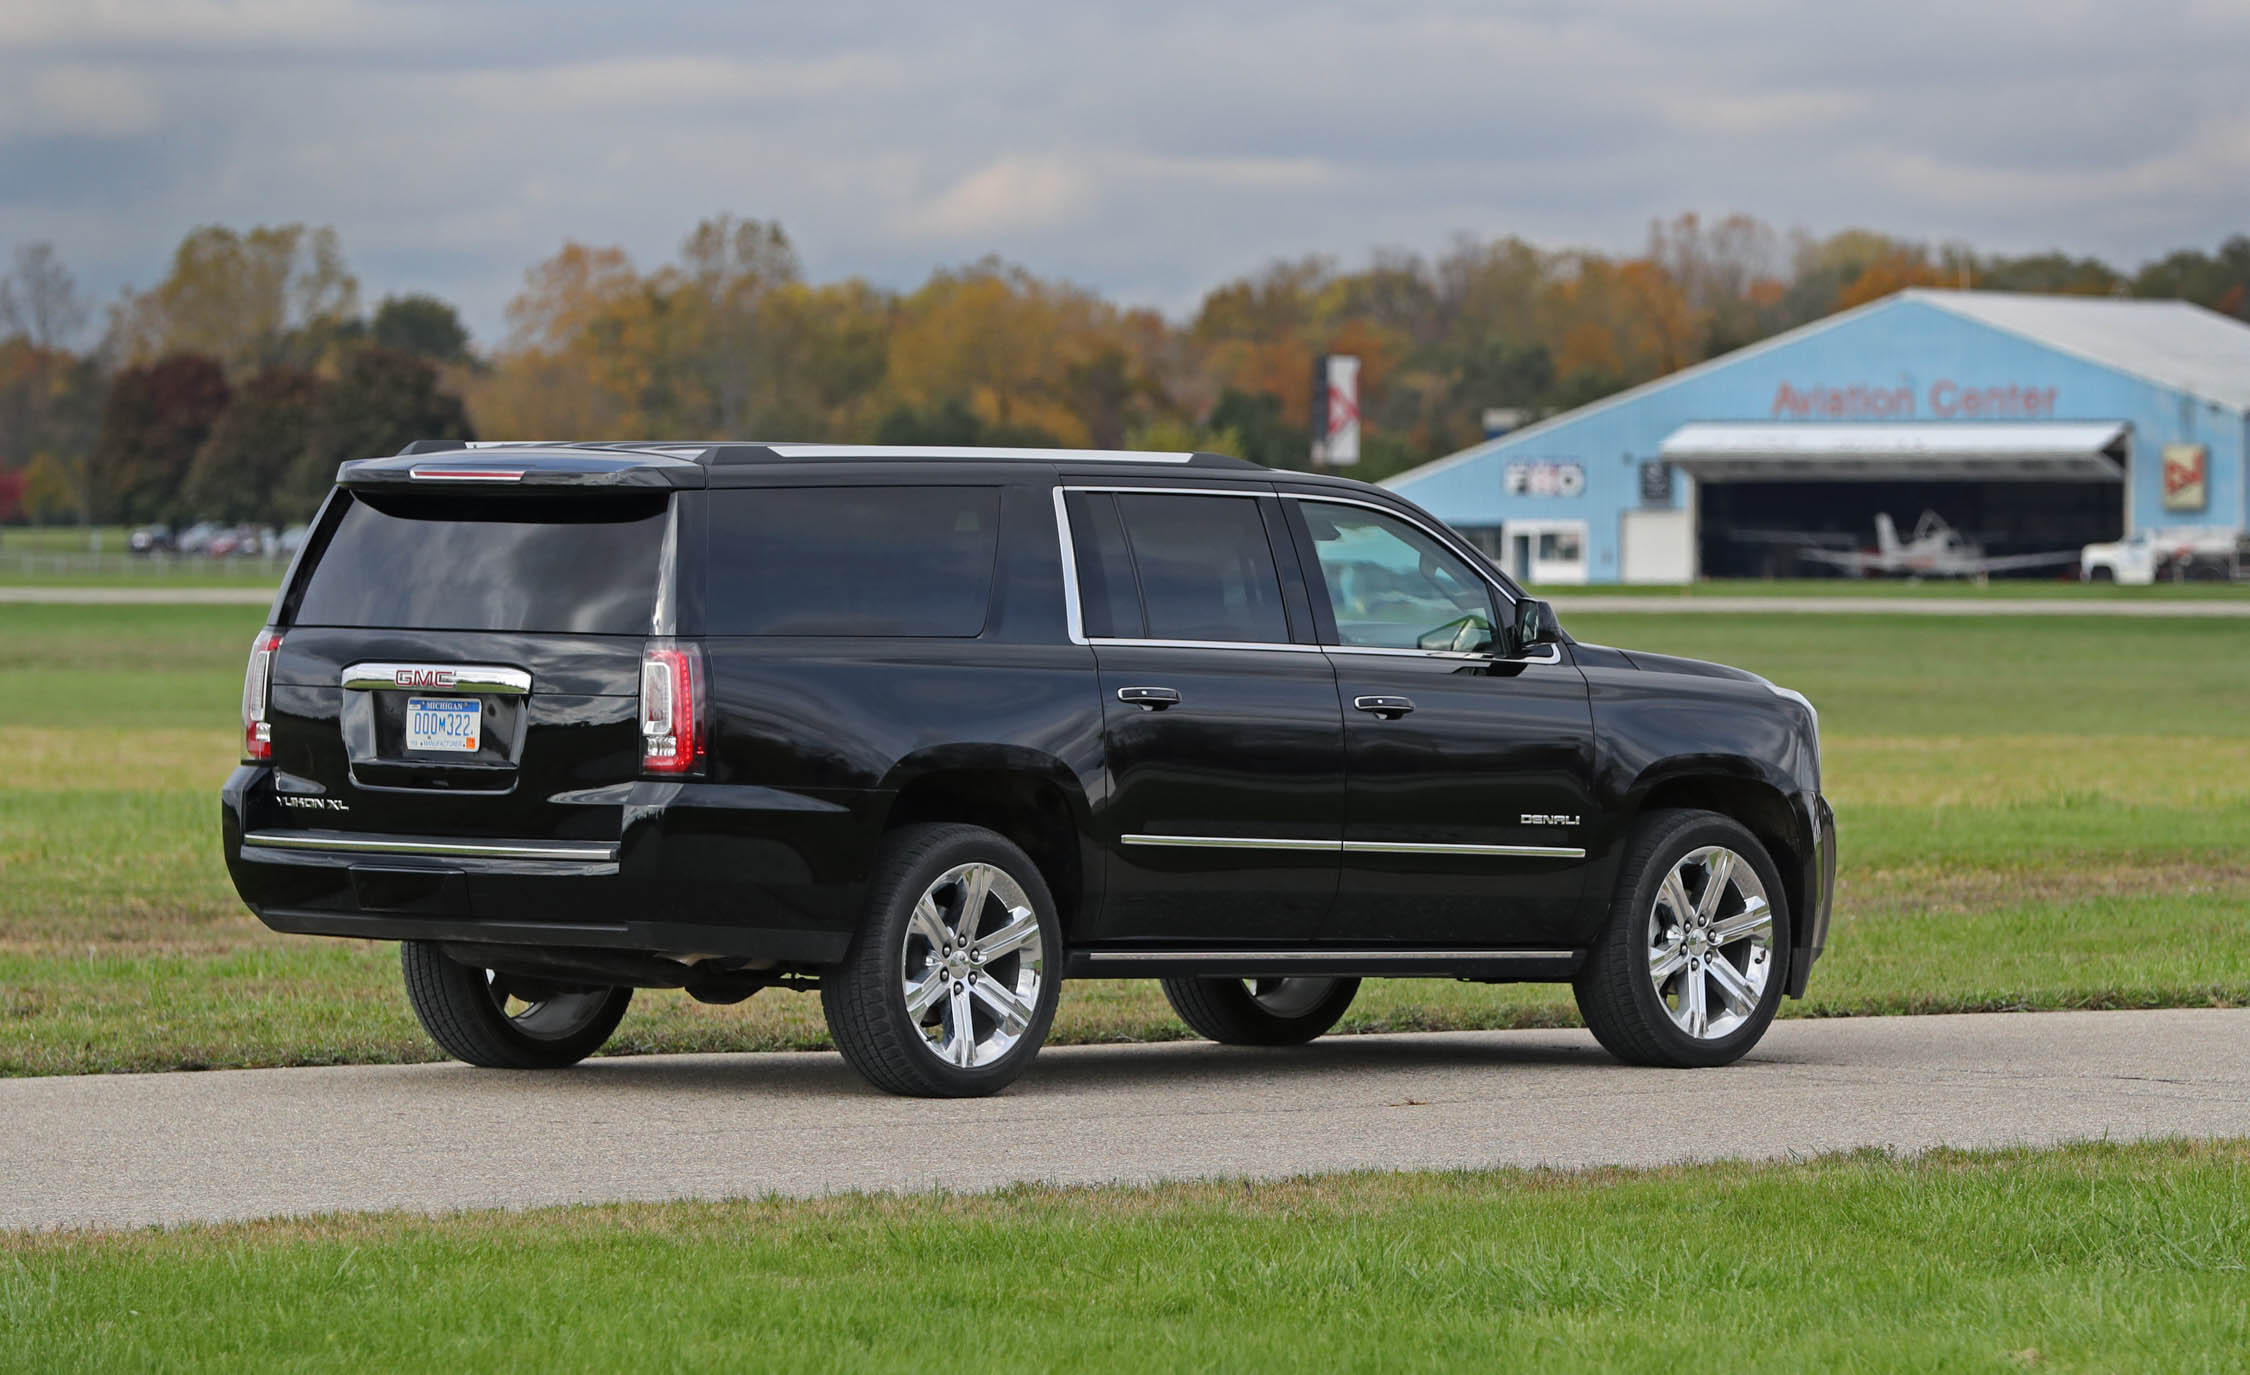 2017 Gmc Yukon Xl Denali Exterior Rear And Side (Photo 6 of 26)